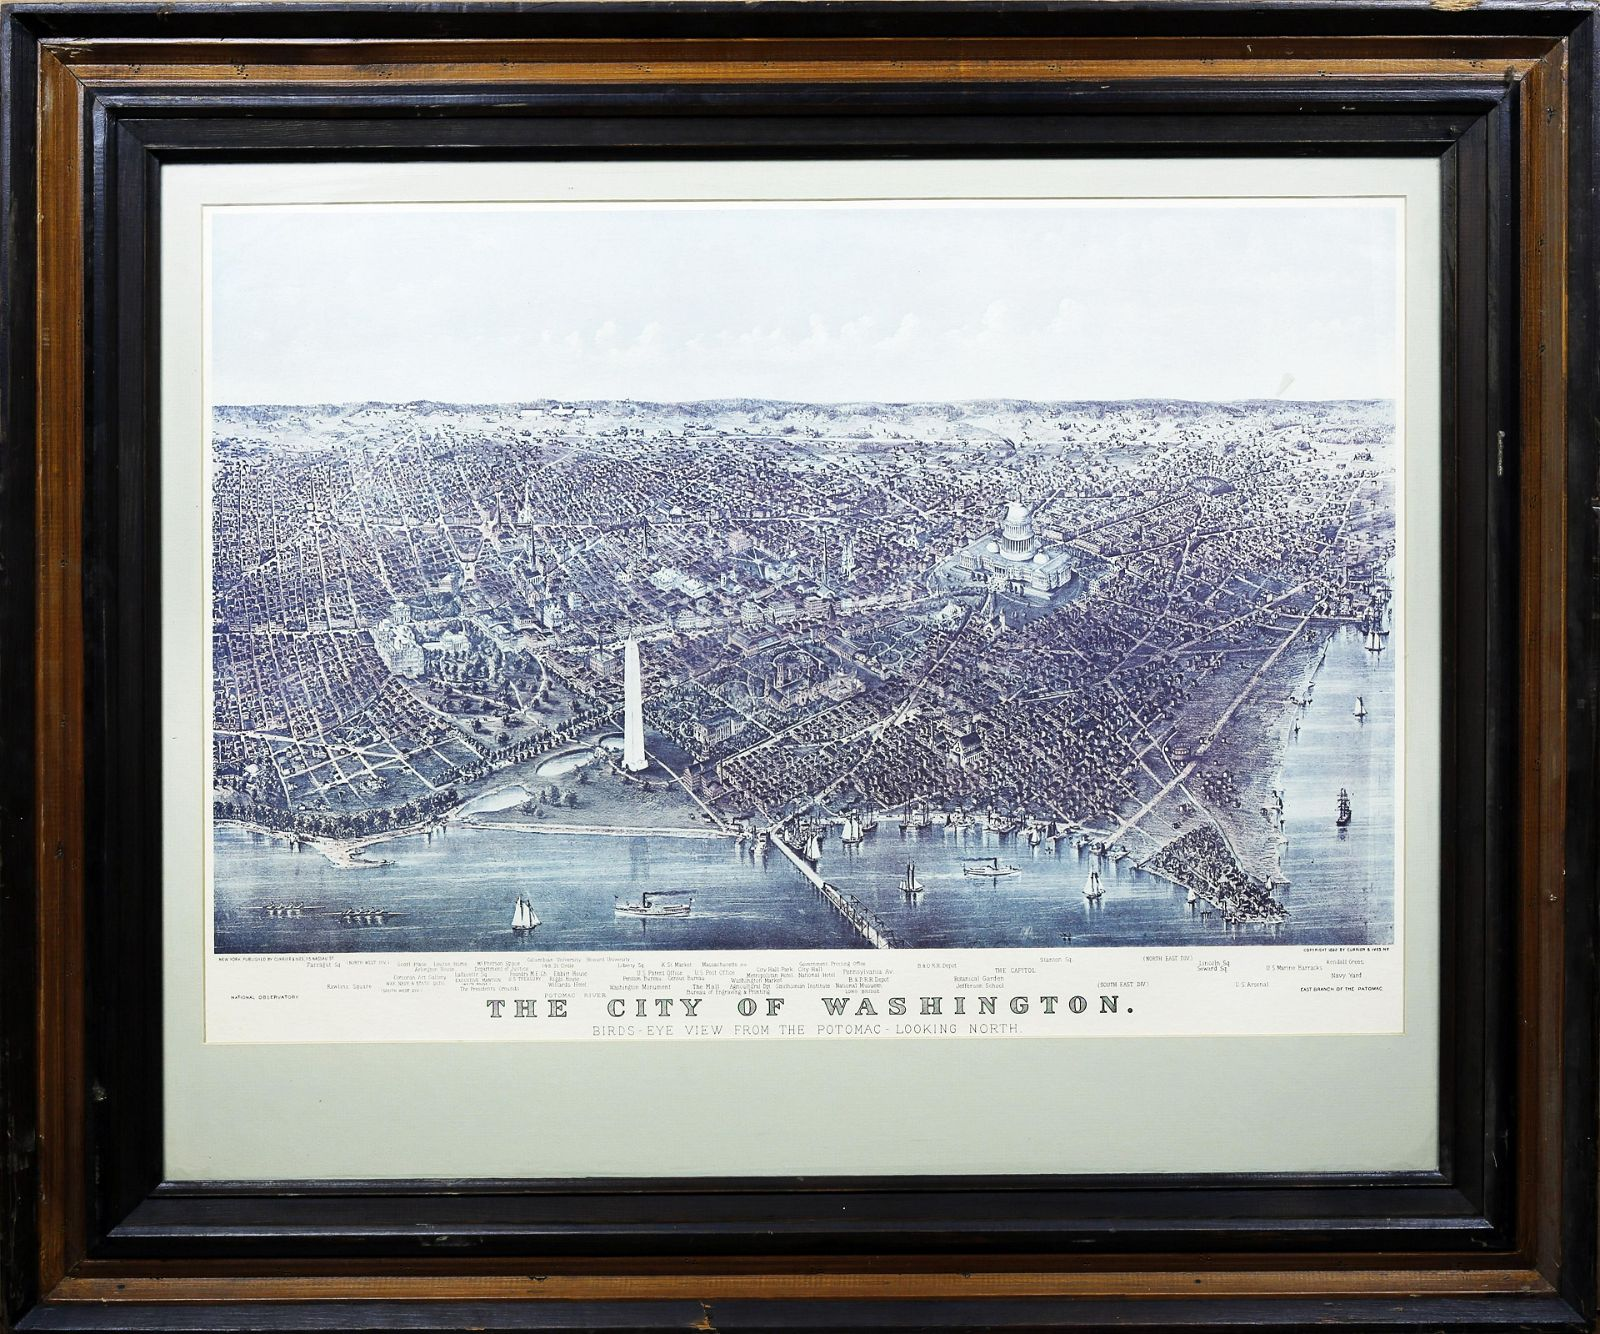 Currier & Ives, The City of Washington (Repro)